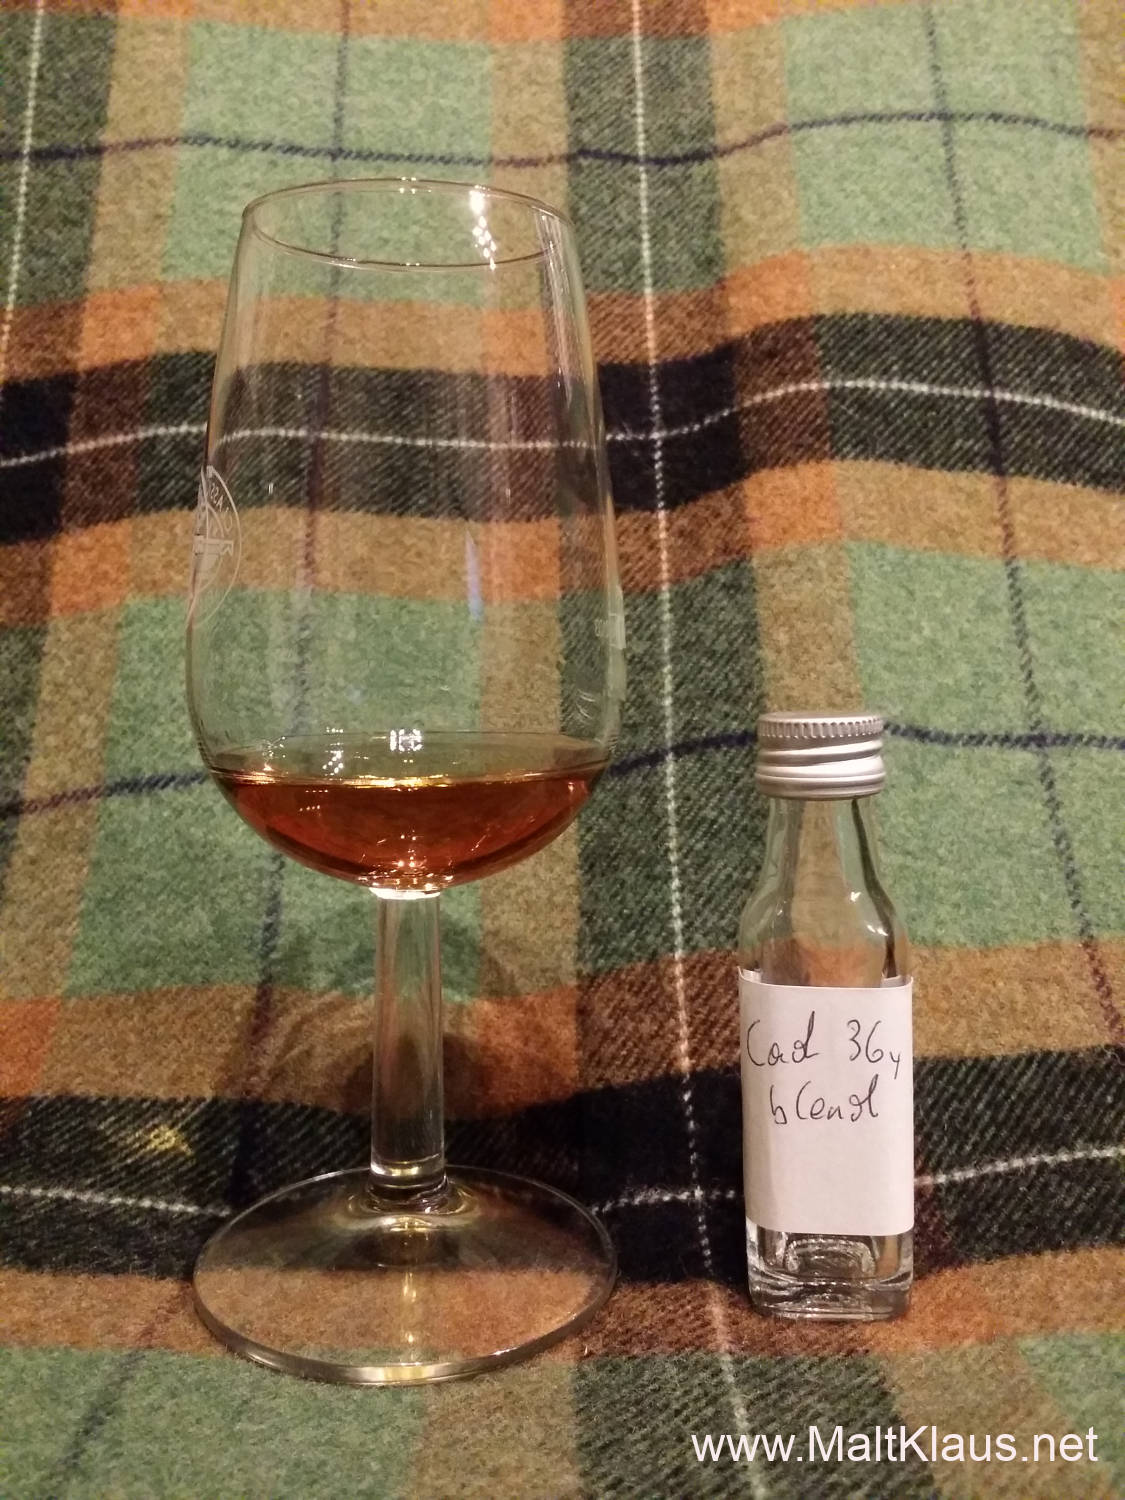 Cadenhead Creations Rich Fruity Sherry 36 yo blend